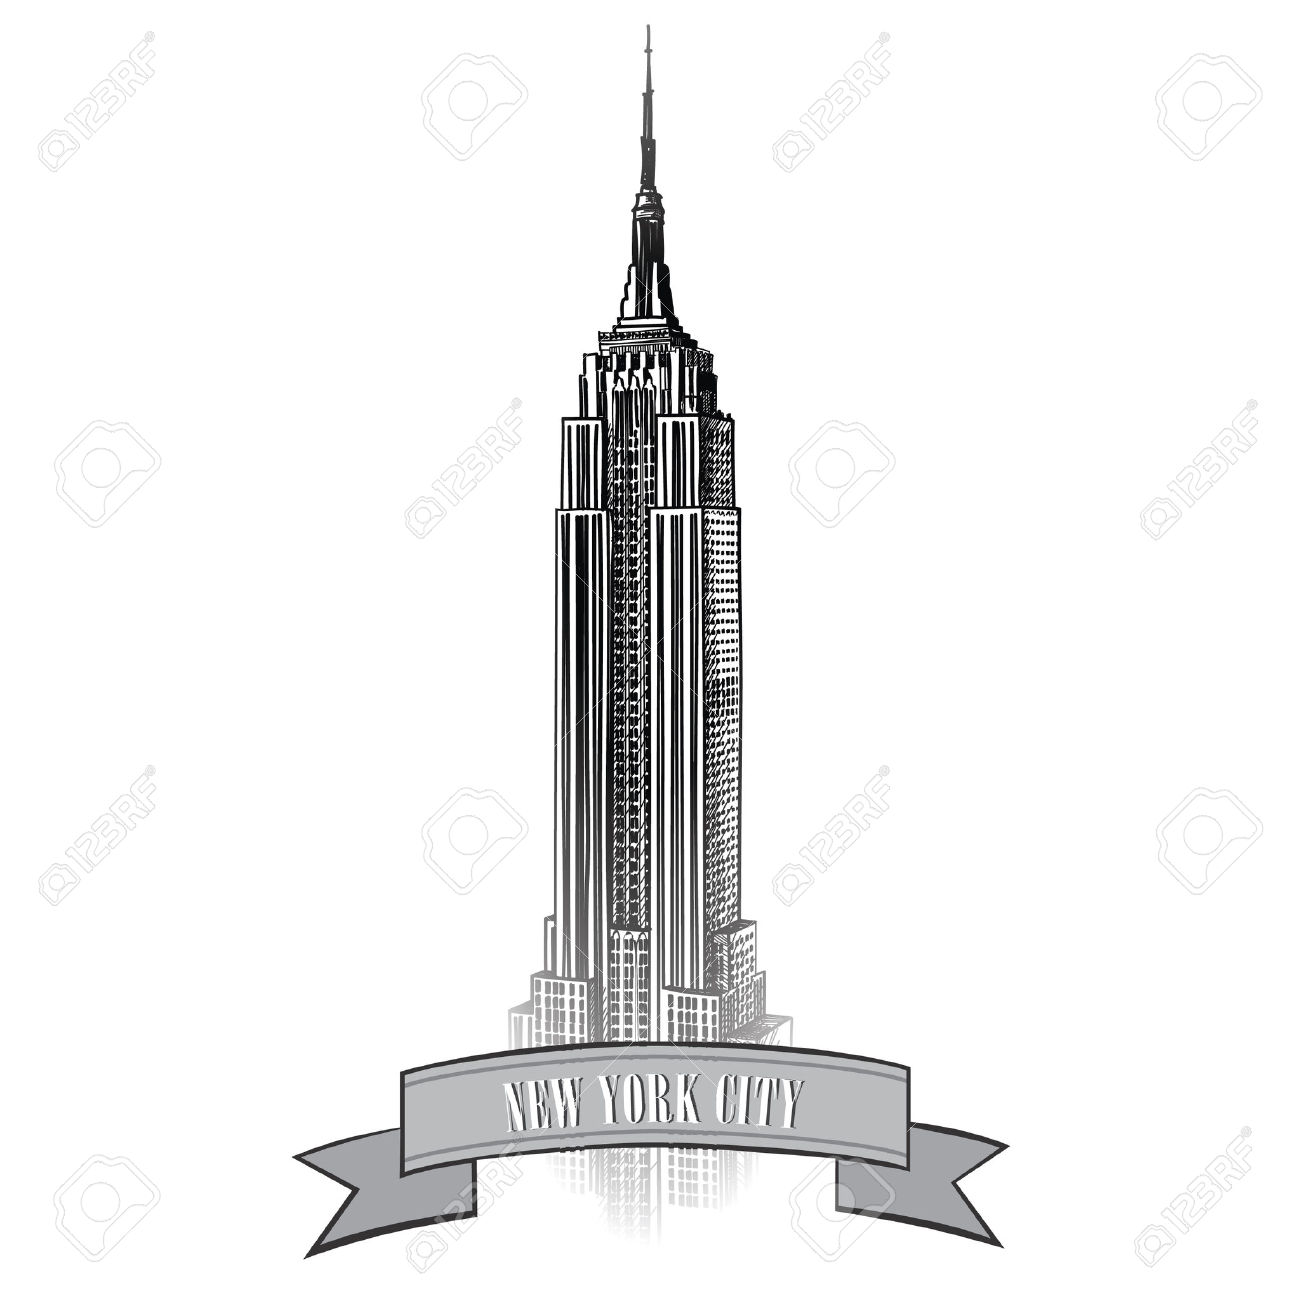 Empire State Building clipart #9, Download drawings